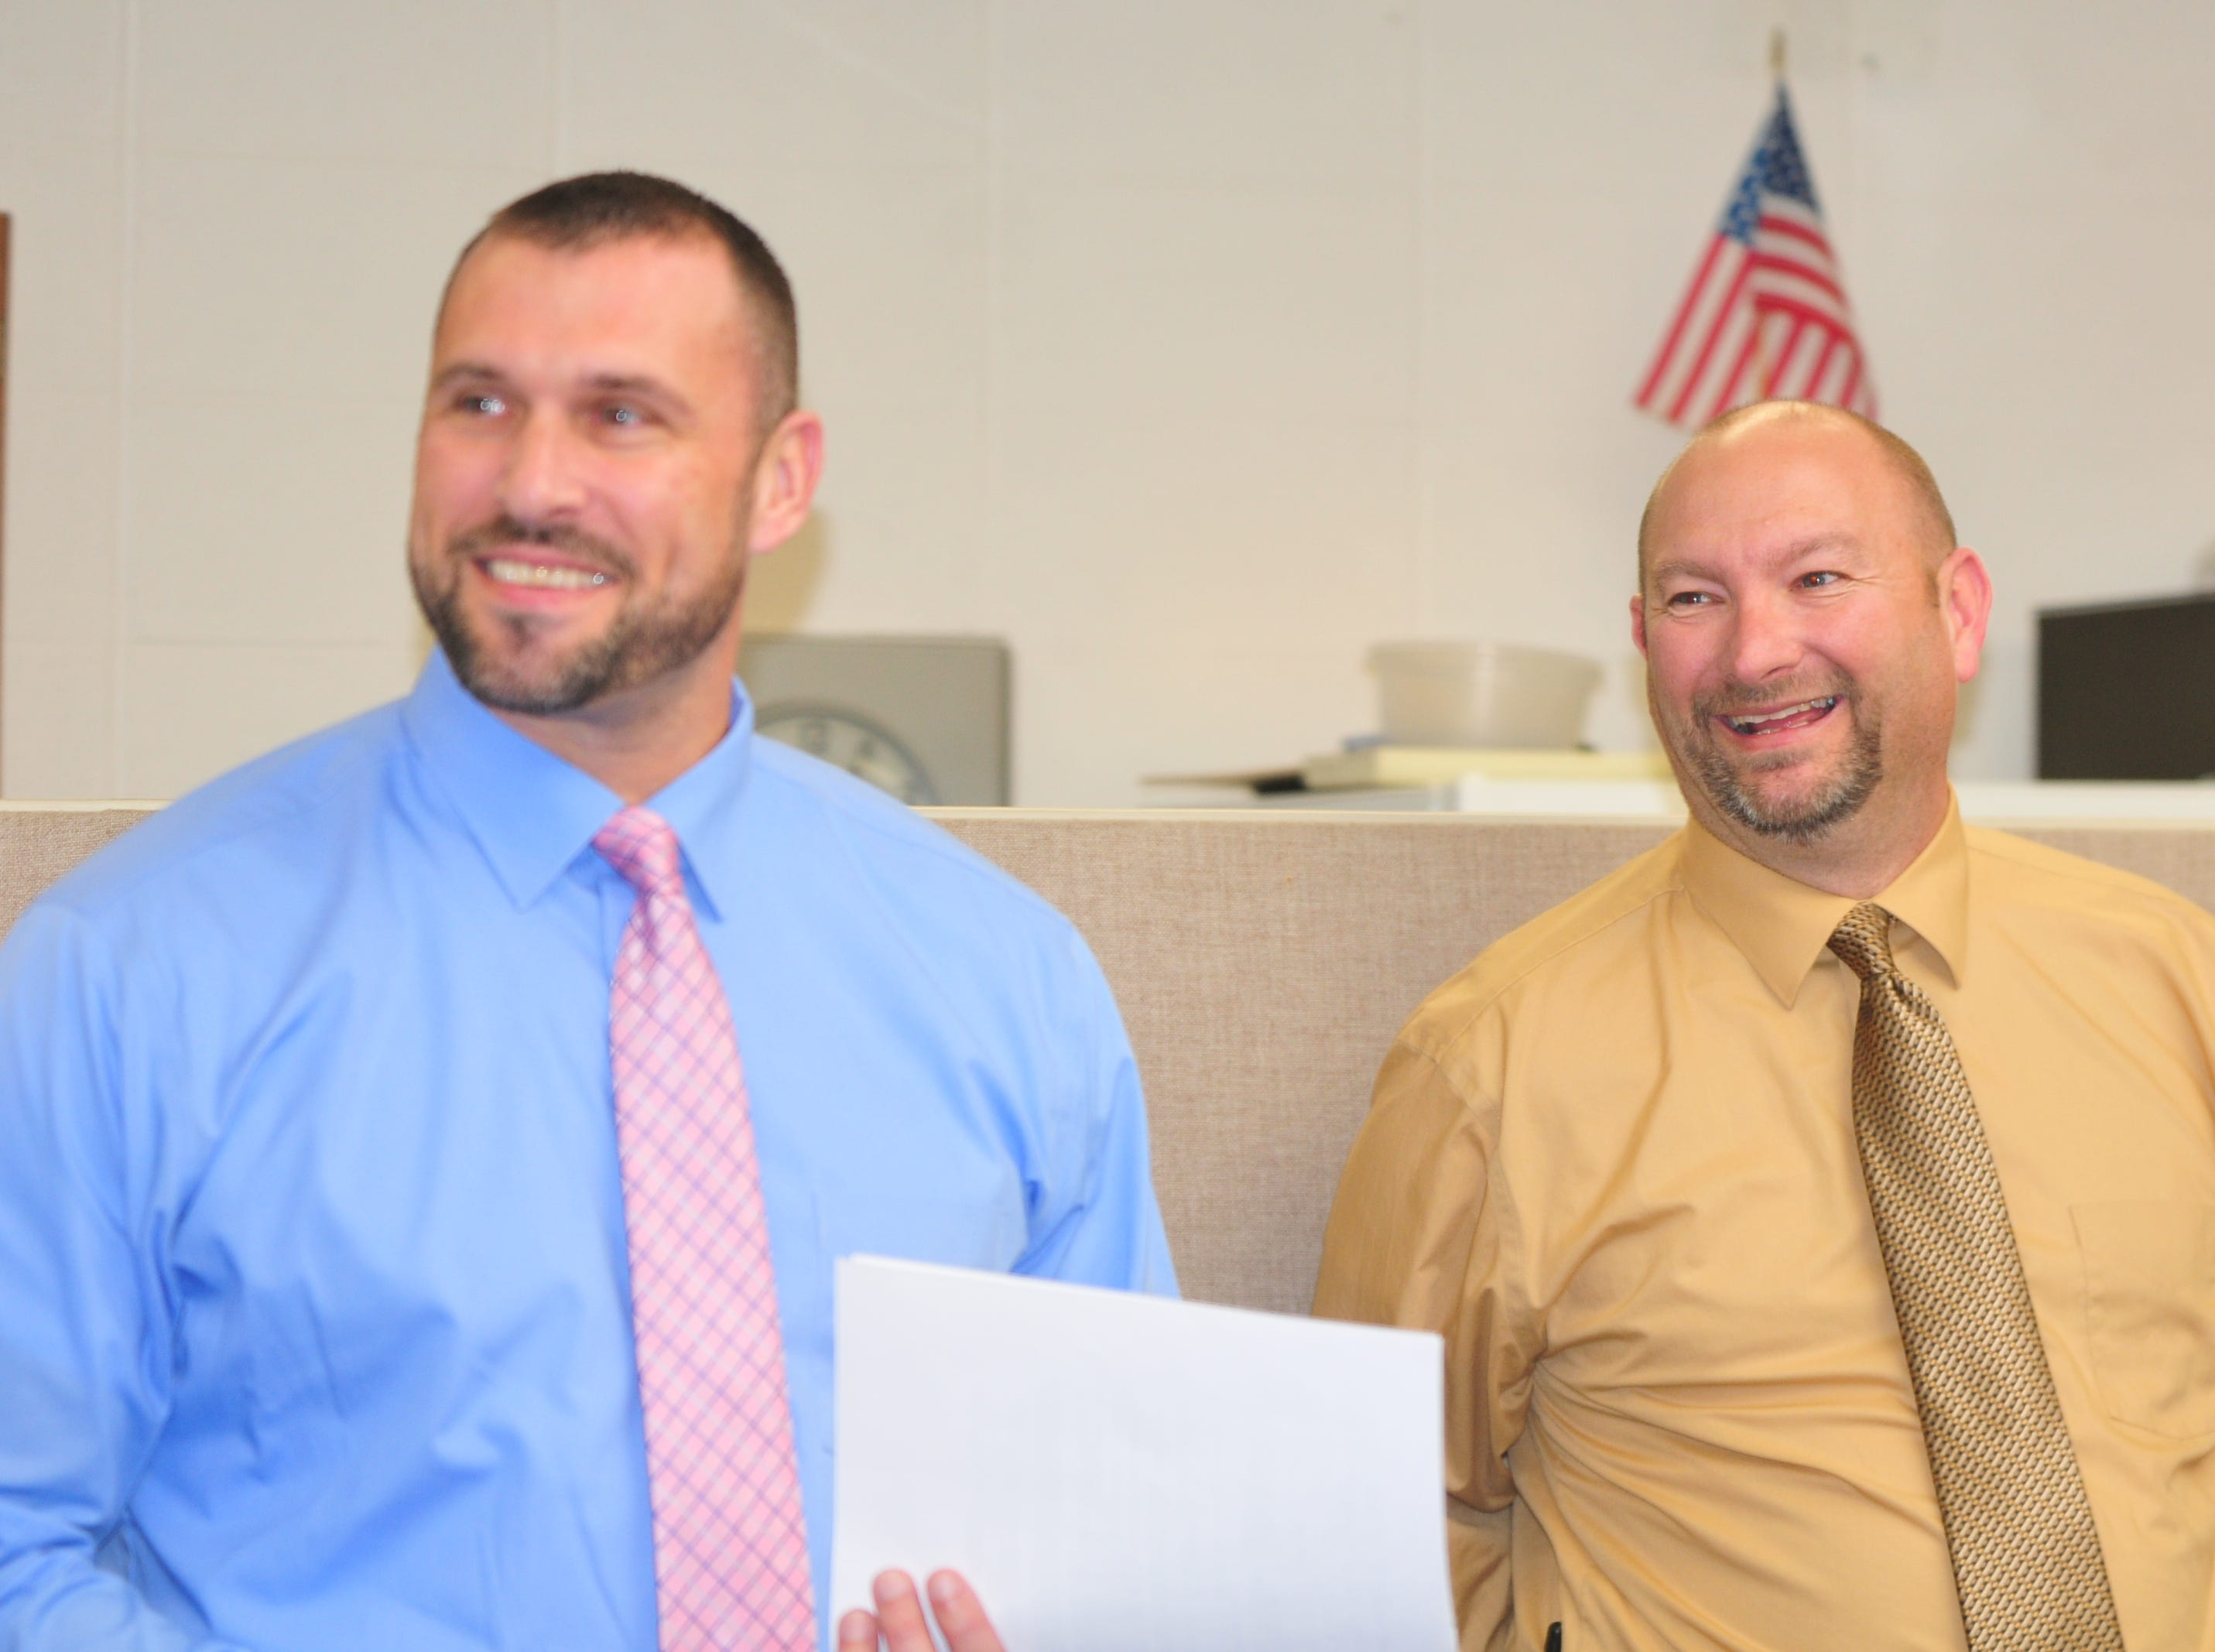 Centerville High School principal Mike McCoy, right, and assistant principal Tim Hollendonner react after notifying senior Molly Coomes that she is a recipient of the Wayne County Foundation's Lily Endowment Community Scholarship at Centerville High School Tuesday, Dec. 11, 2018.